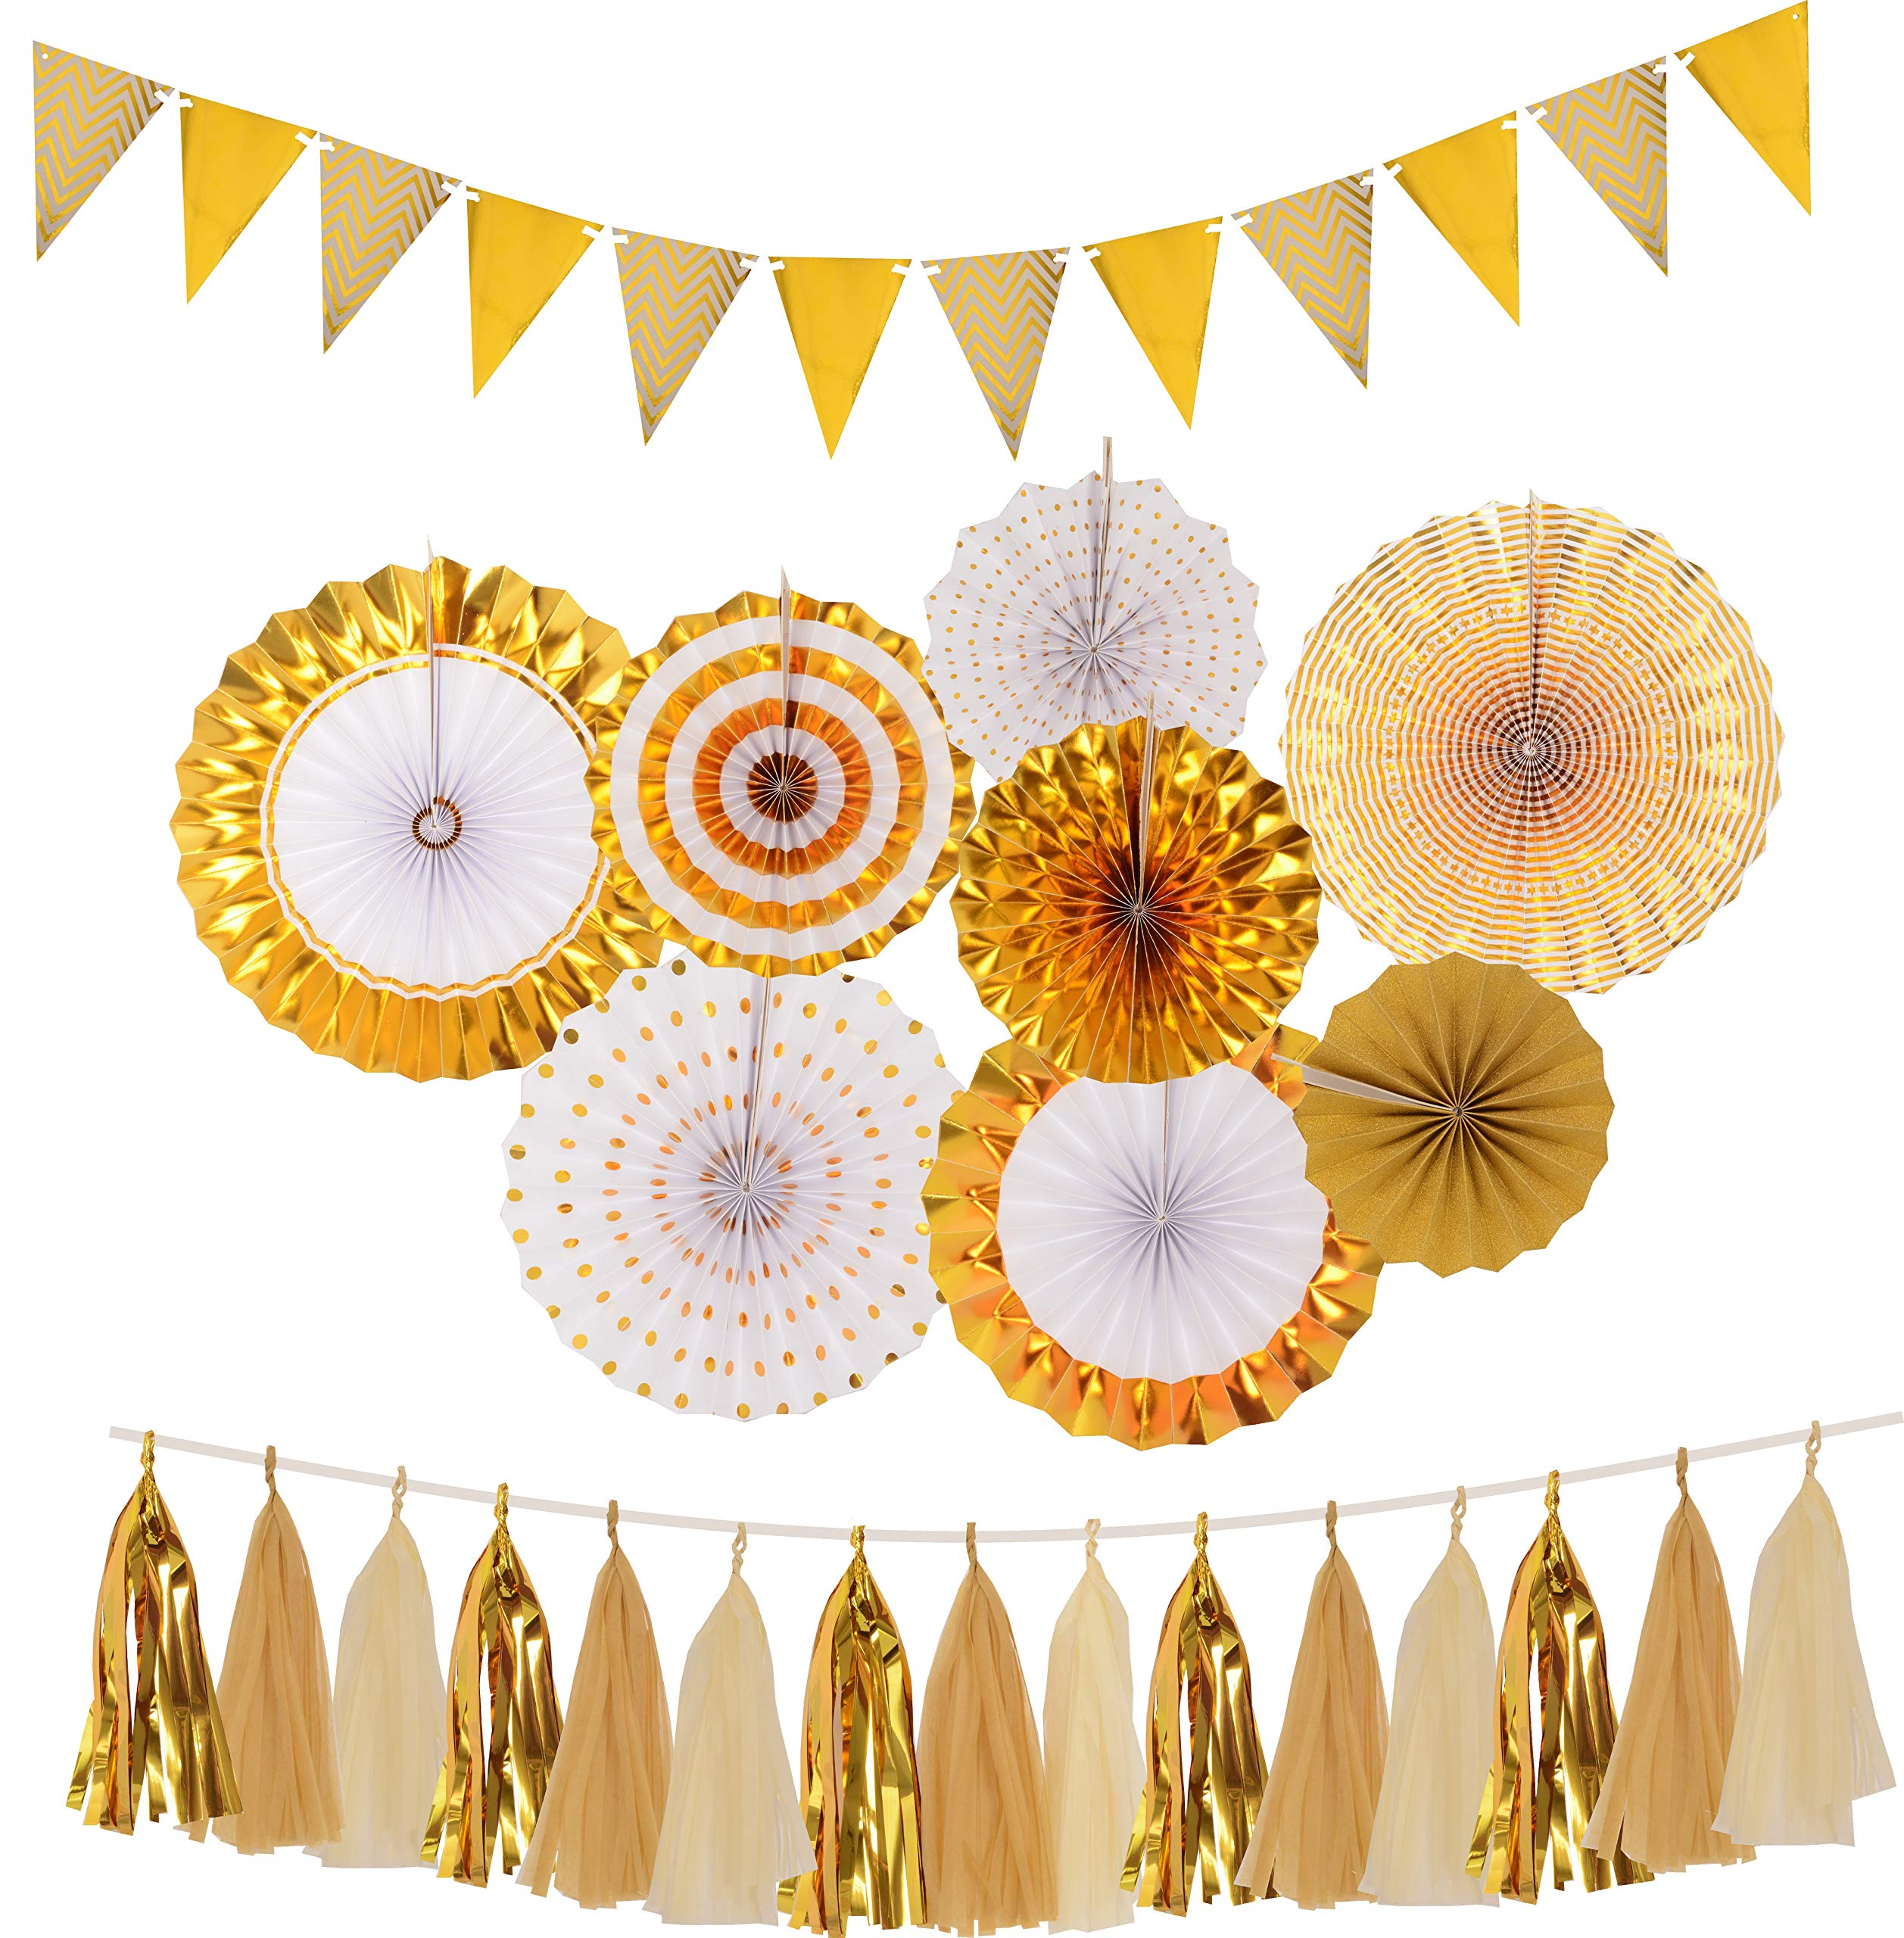 Gold Party Decorations, Gold Paper Fans Decorations, Gold Glittery paper pennant Banner Triangle Flags, GoldTissue Paper Tassels Garland, Gold Paper Fan Hanging for Baby Shower, Birthday Party Wedding